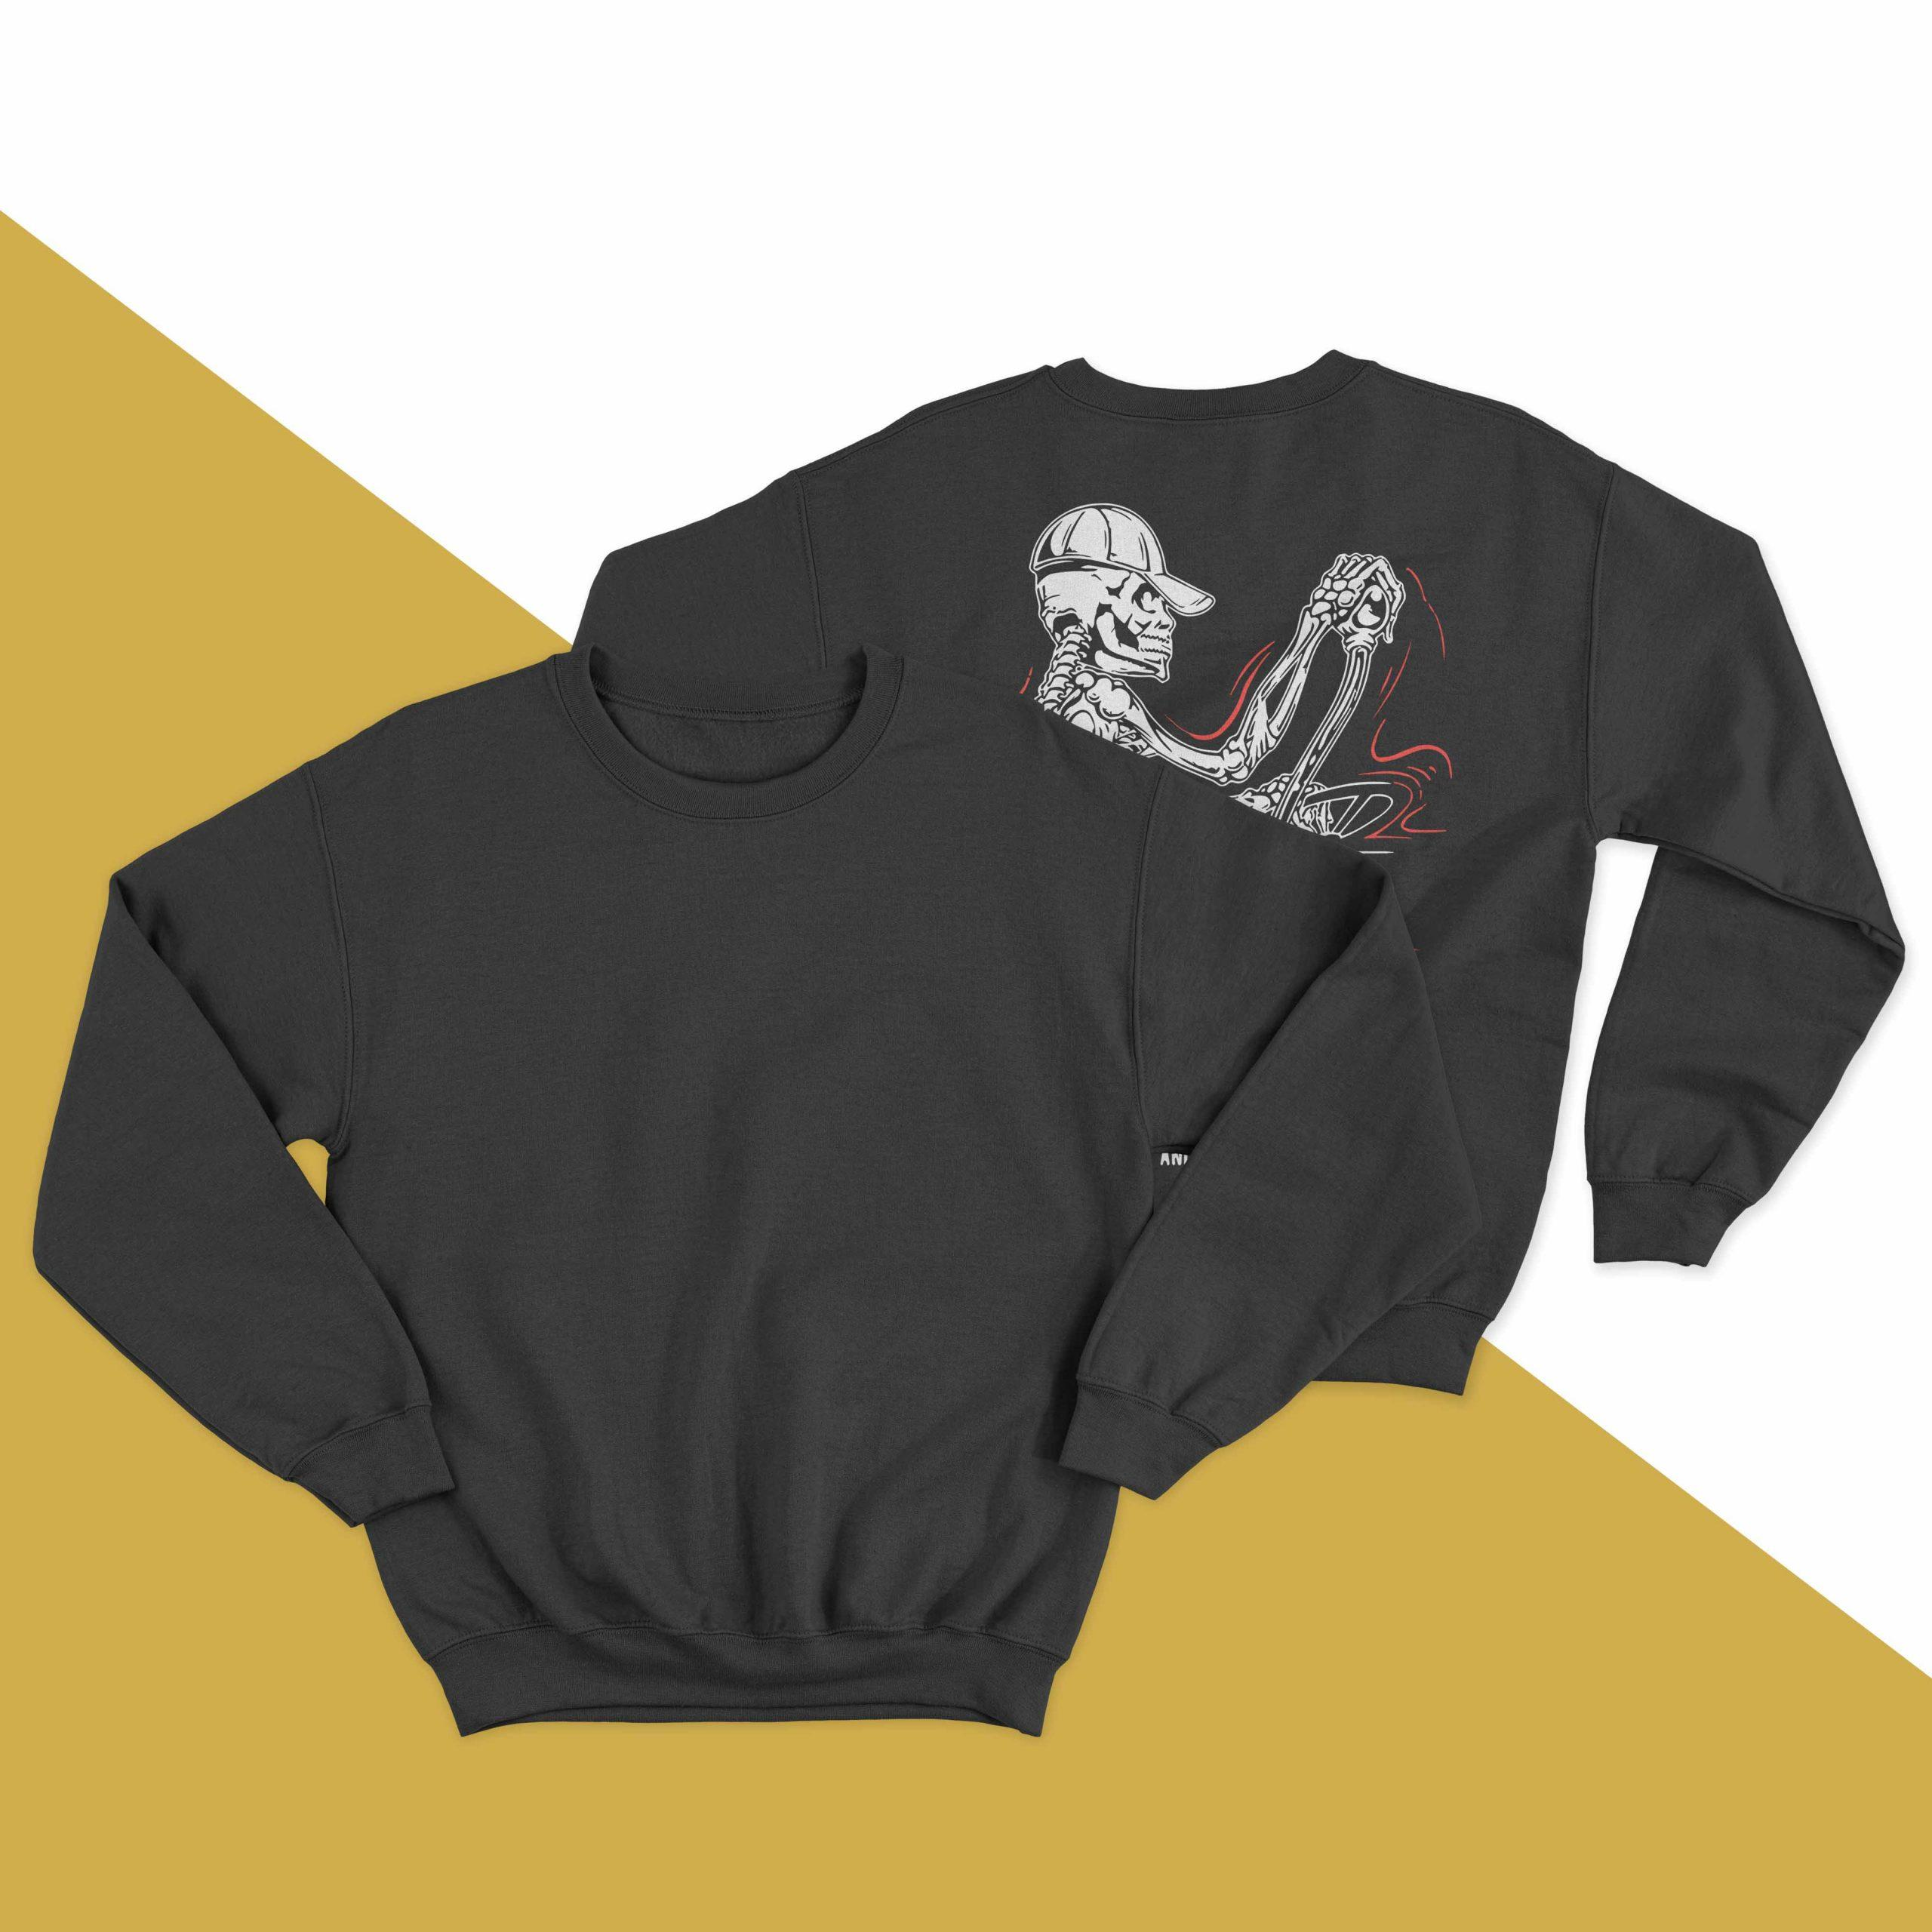 18 To Life Driving And Surviving Longsleeve